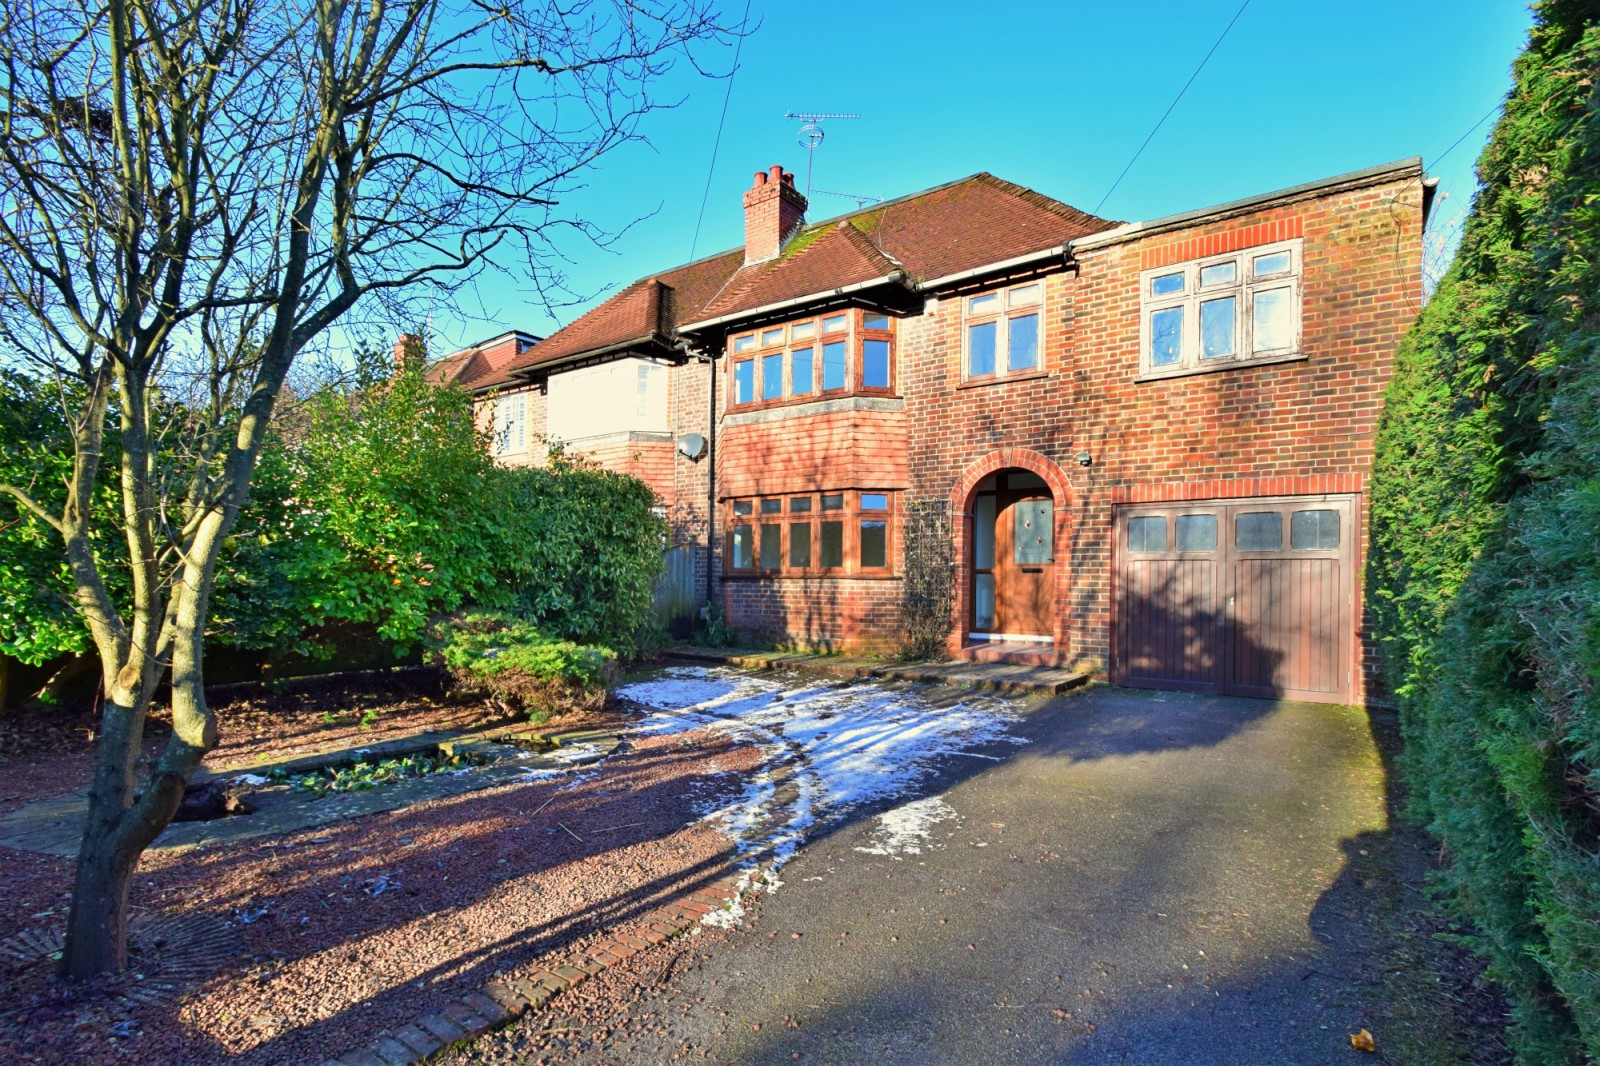 2 Milverton Road, Winchester SO22 5AU